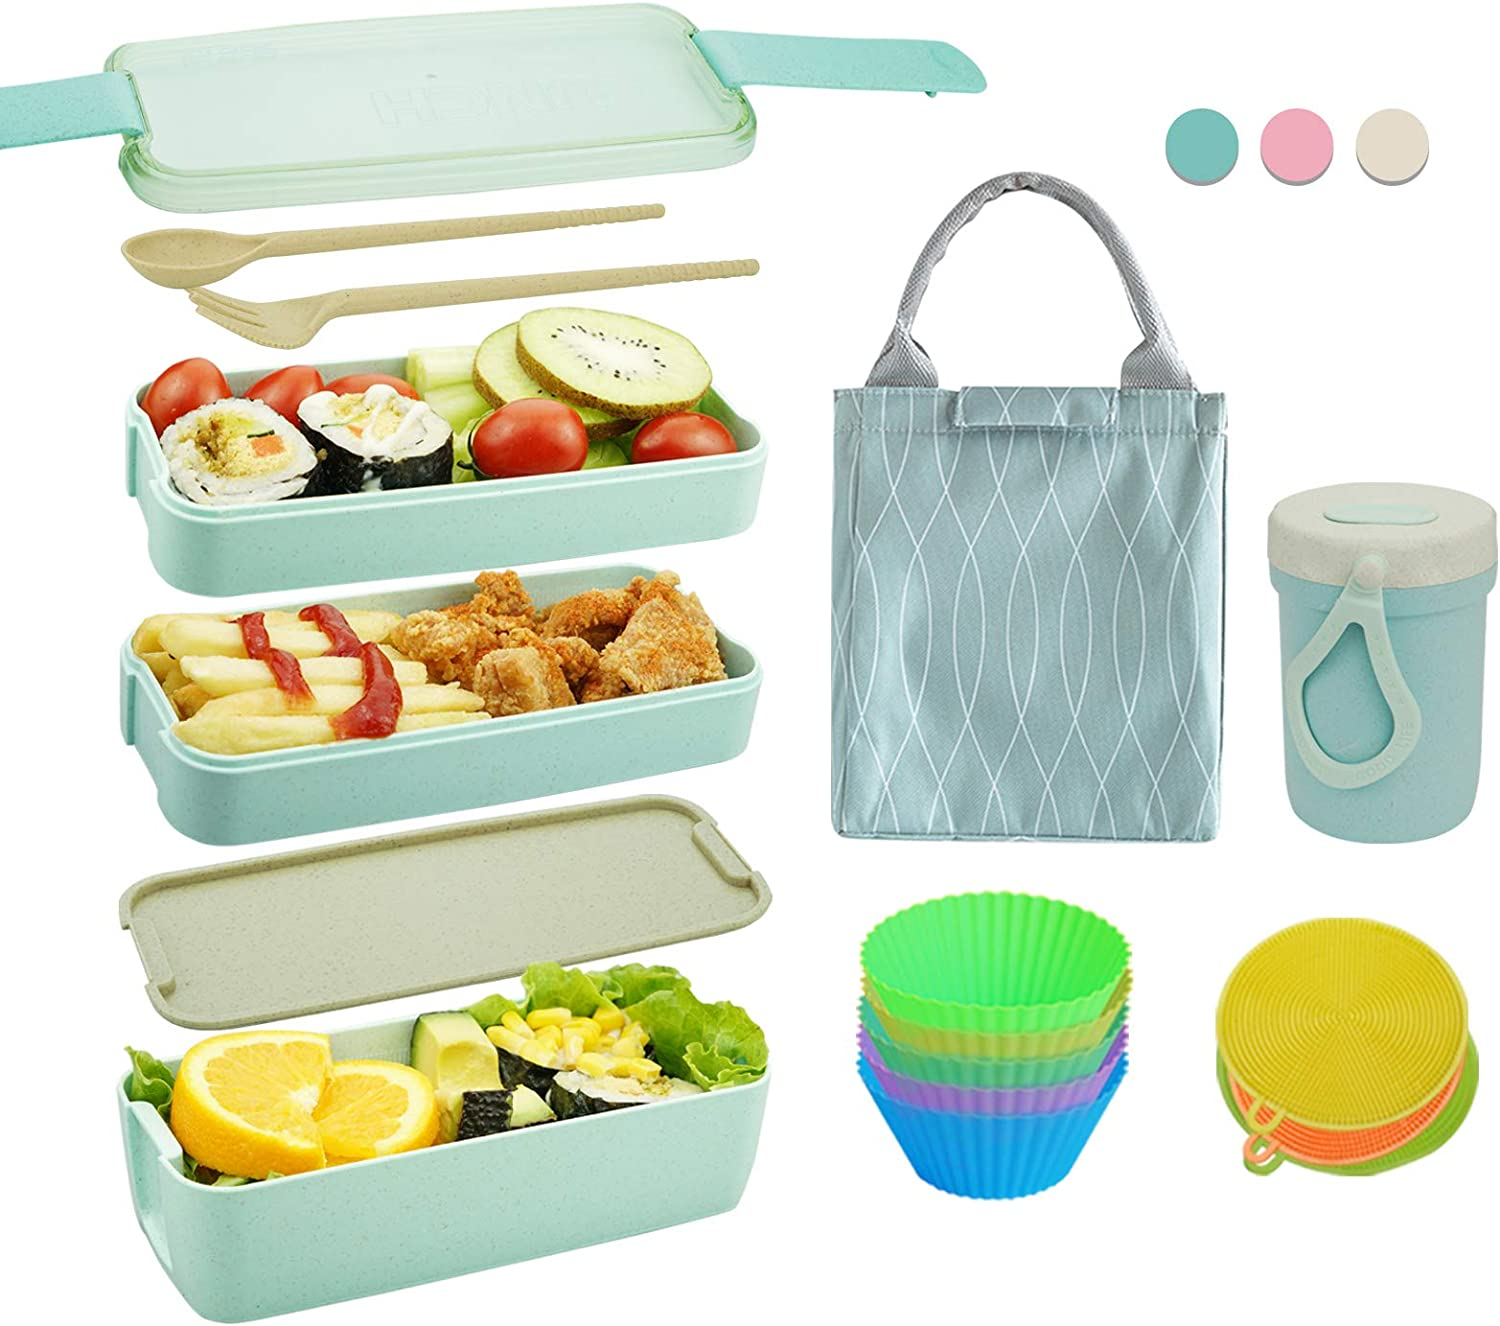 Bento Box Japanese Lunch Box Kit (11 PCS) 3-In-1 Compartment, Leak-proof Bento Lunch Box Meal Prep Containers with Utensils, Bento Boxes for Adults/Kids (Green)